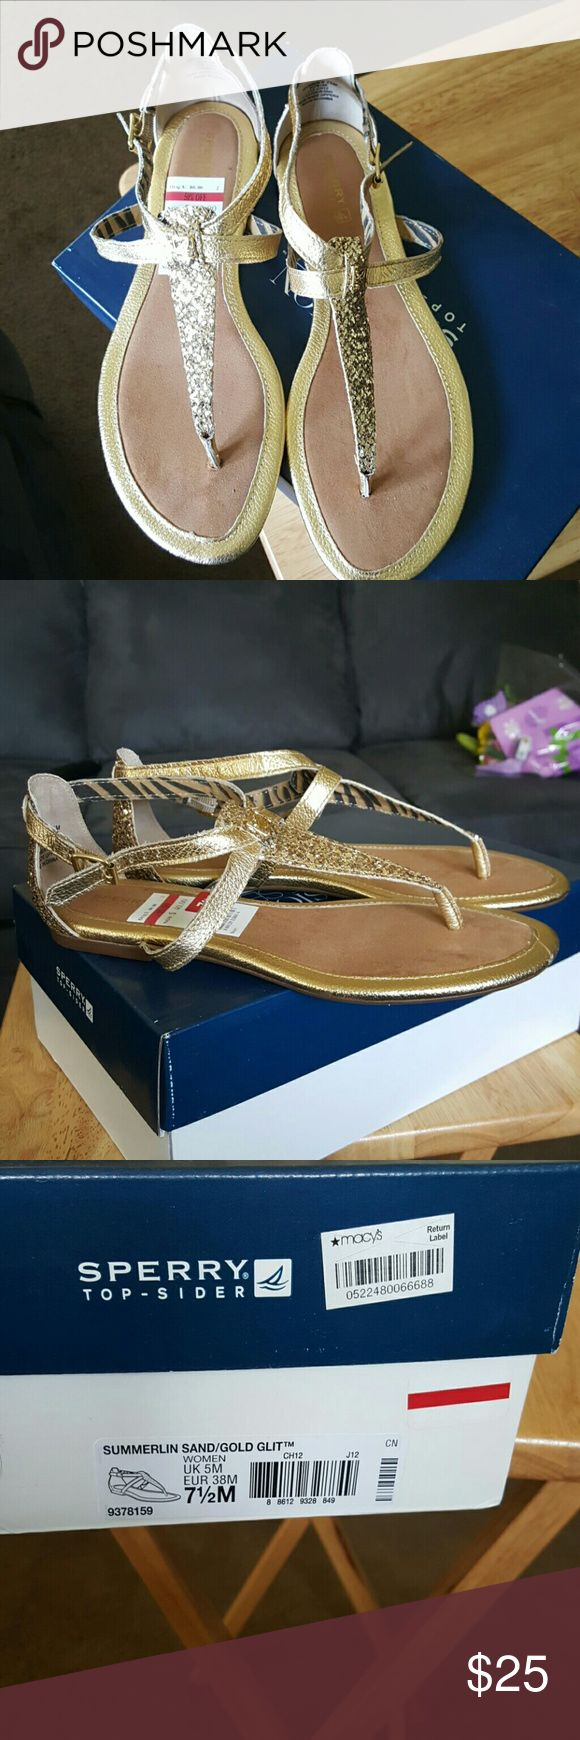 Sperry sandals Brand new in box Gold Sperry sandals Size 7 1/2.  Offers considered Sperry Shoes Sandals